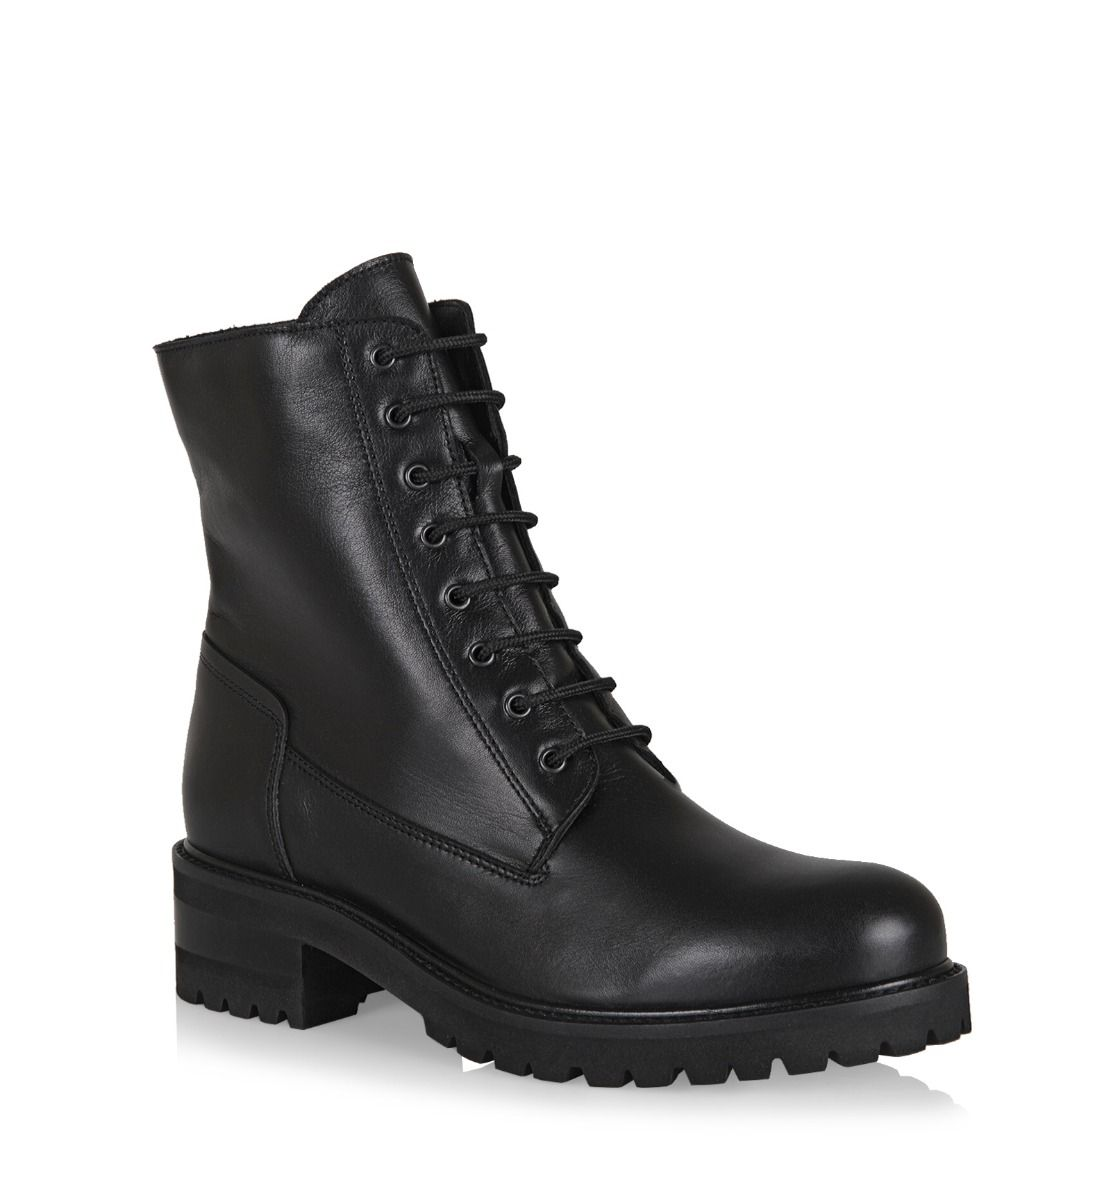 Caterina Boot in Black